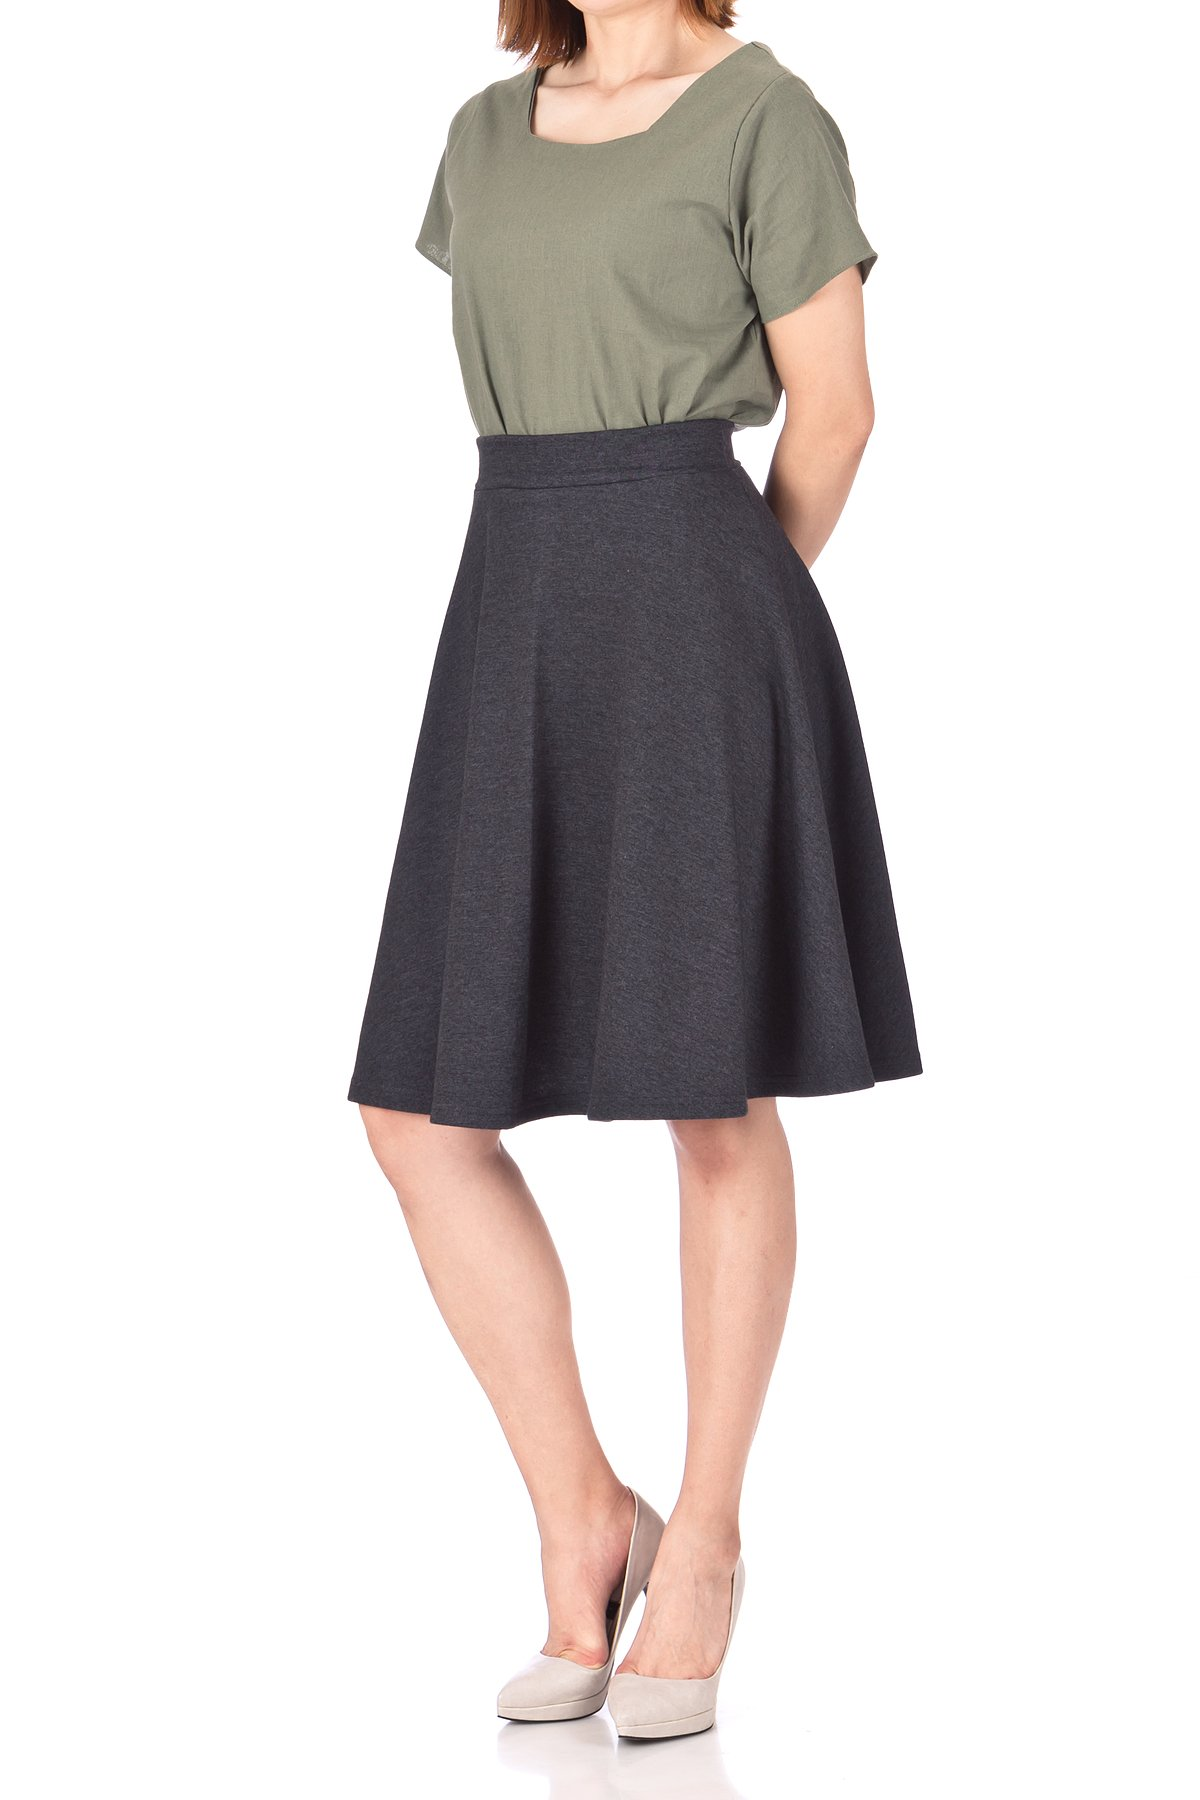 Comfy and Lovely Cotton Blend Versatile Casual Office High Waist A line Full Flared Swing Circle Skater Knee Length Skirt Charcoal 02